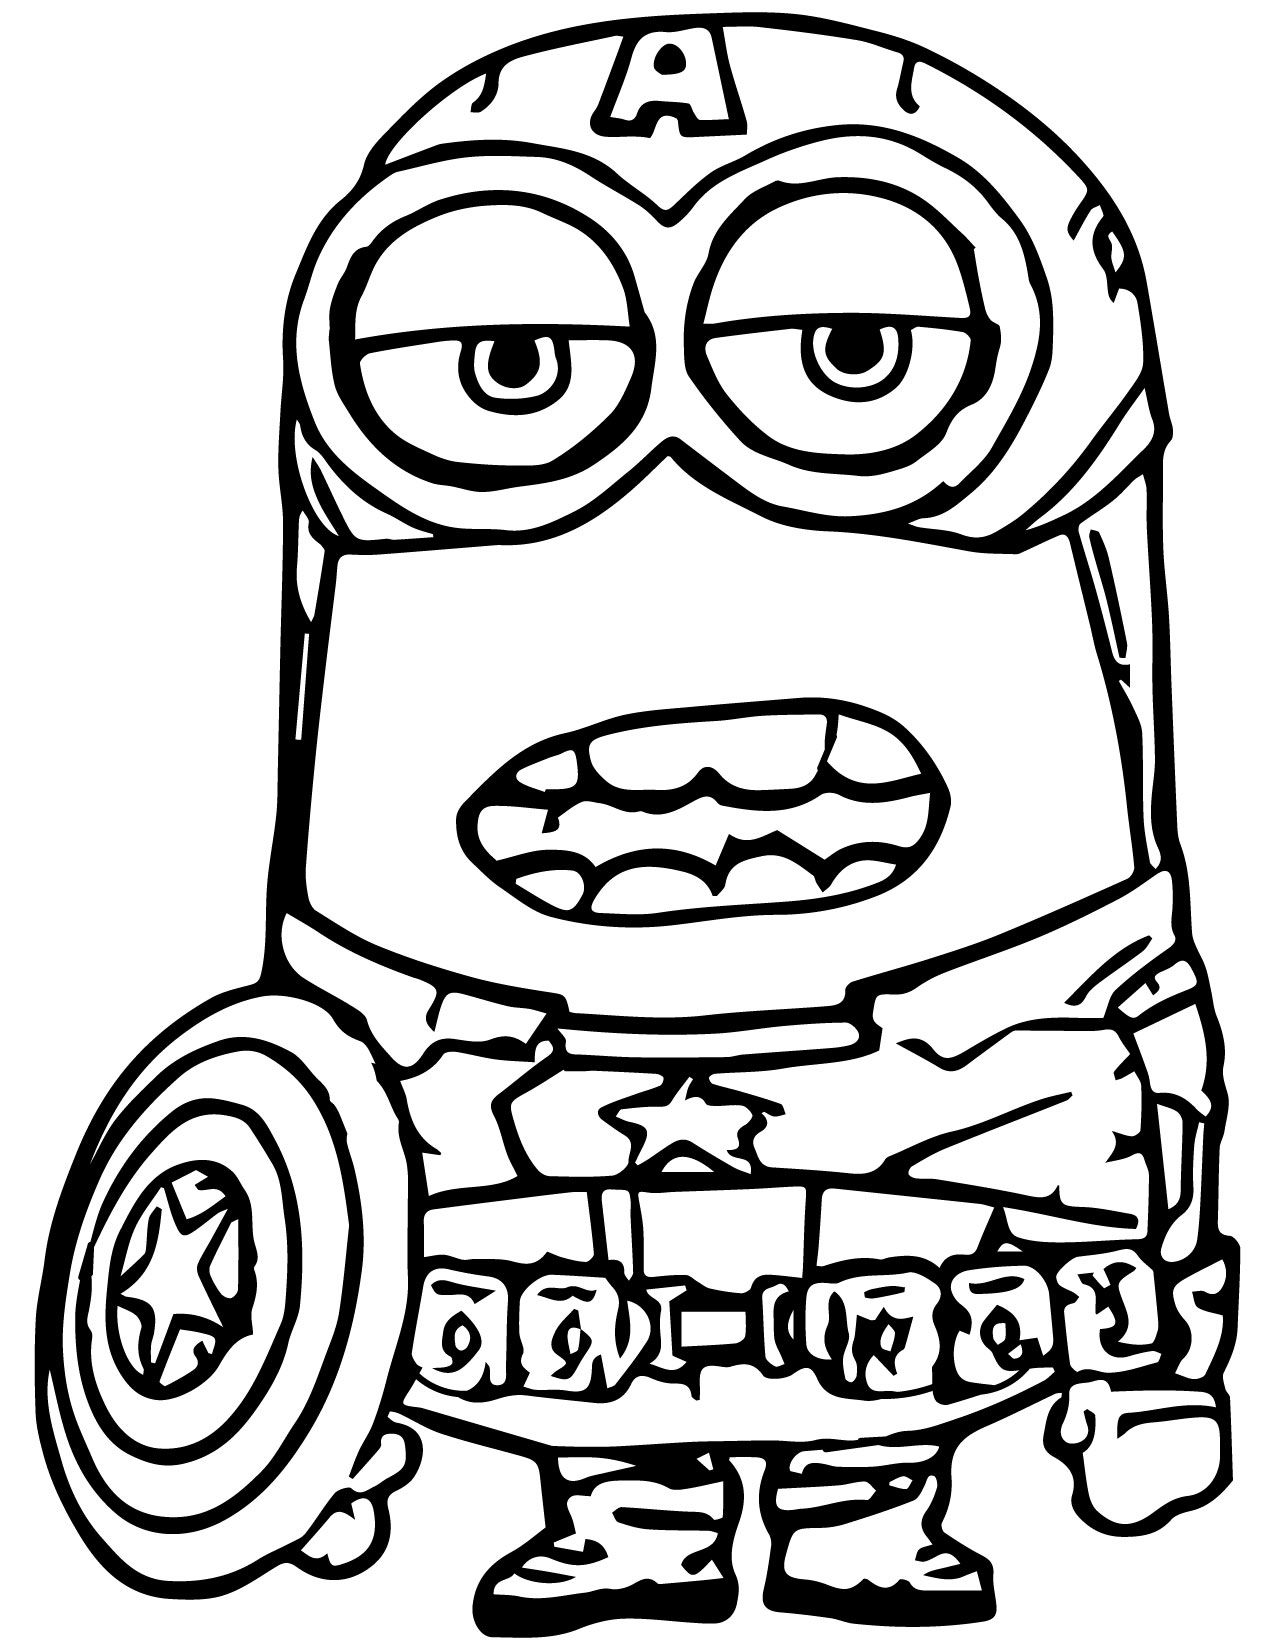 46+ Coloring pages of cool things info